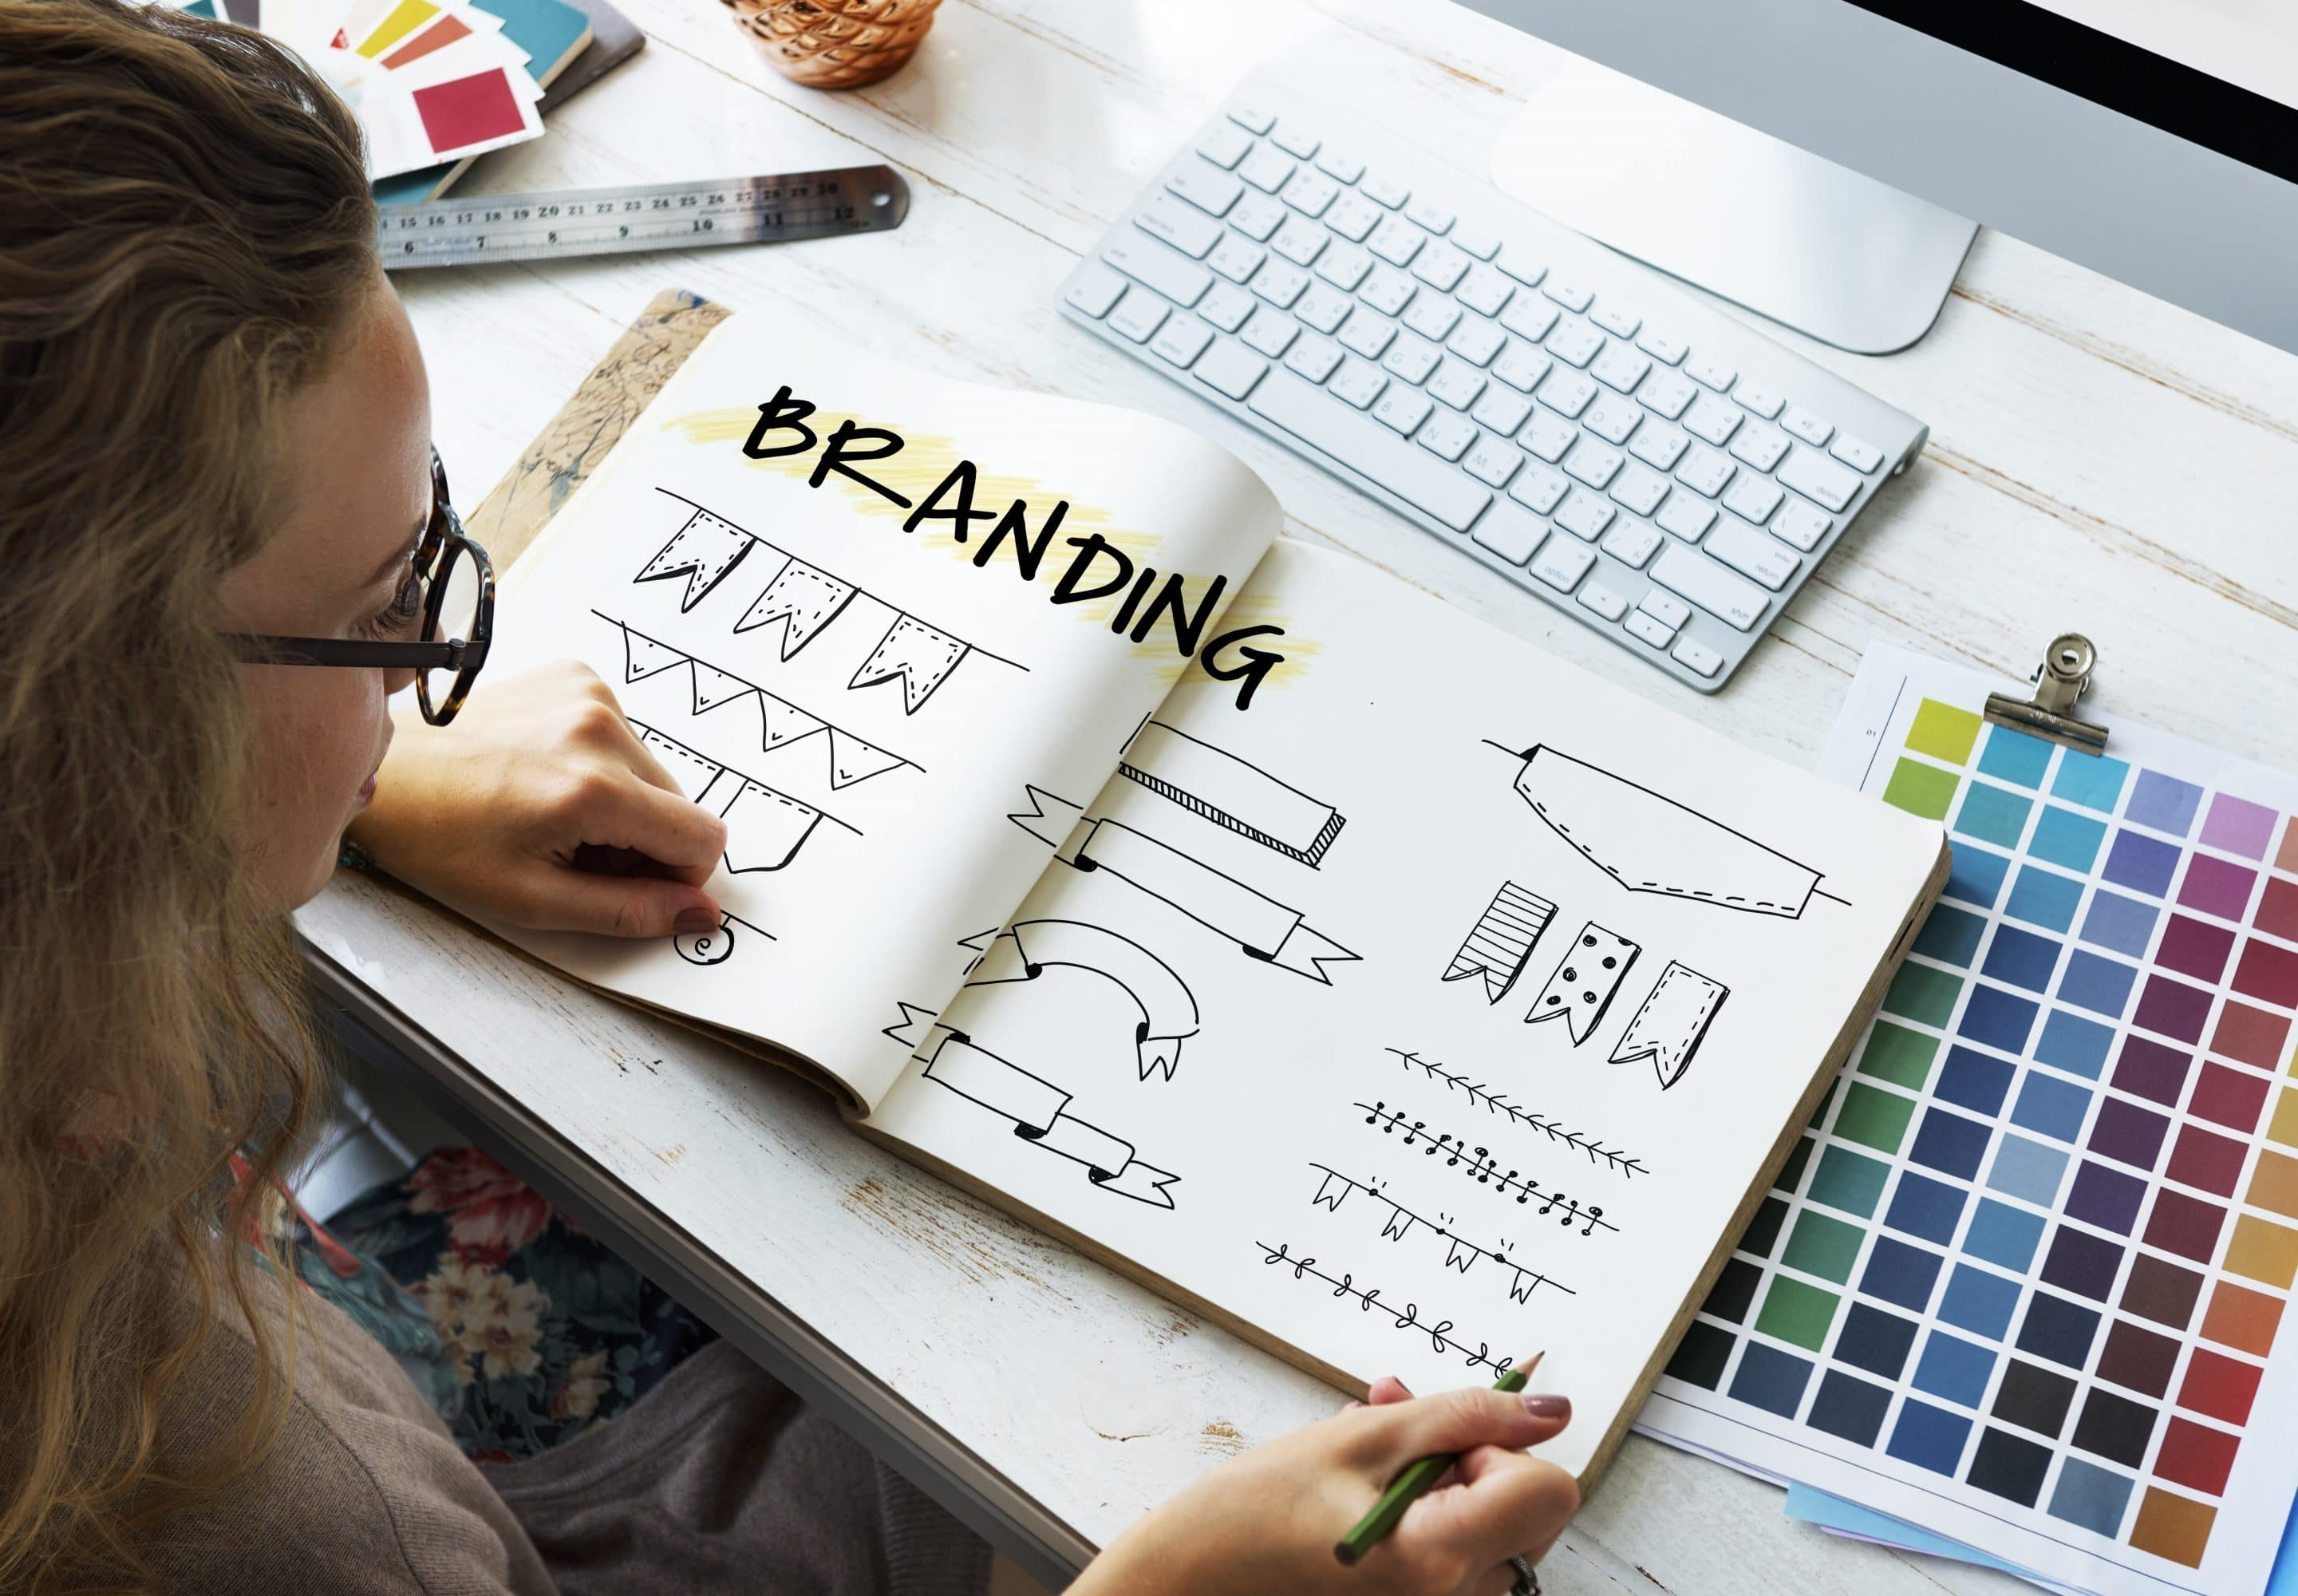 5 of the Best Strategies For Building Your Brand Through Social Media Marketing